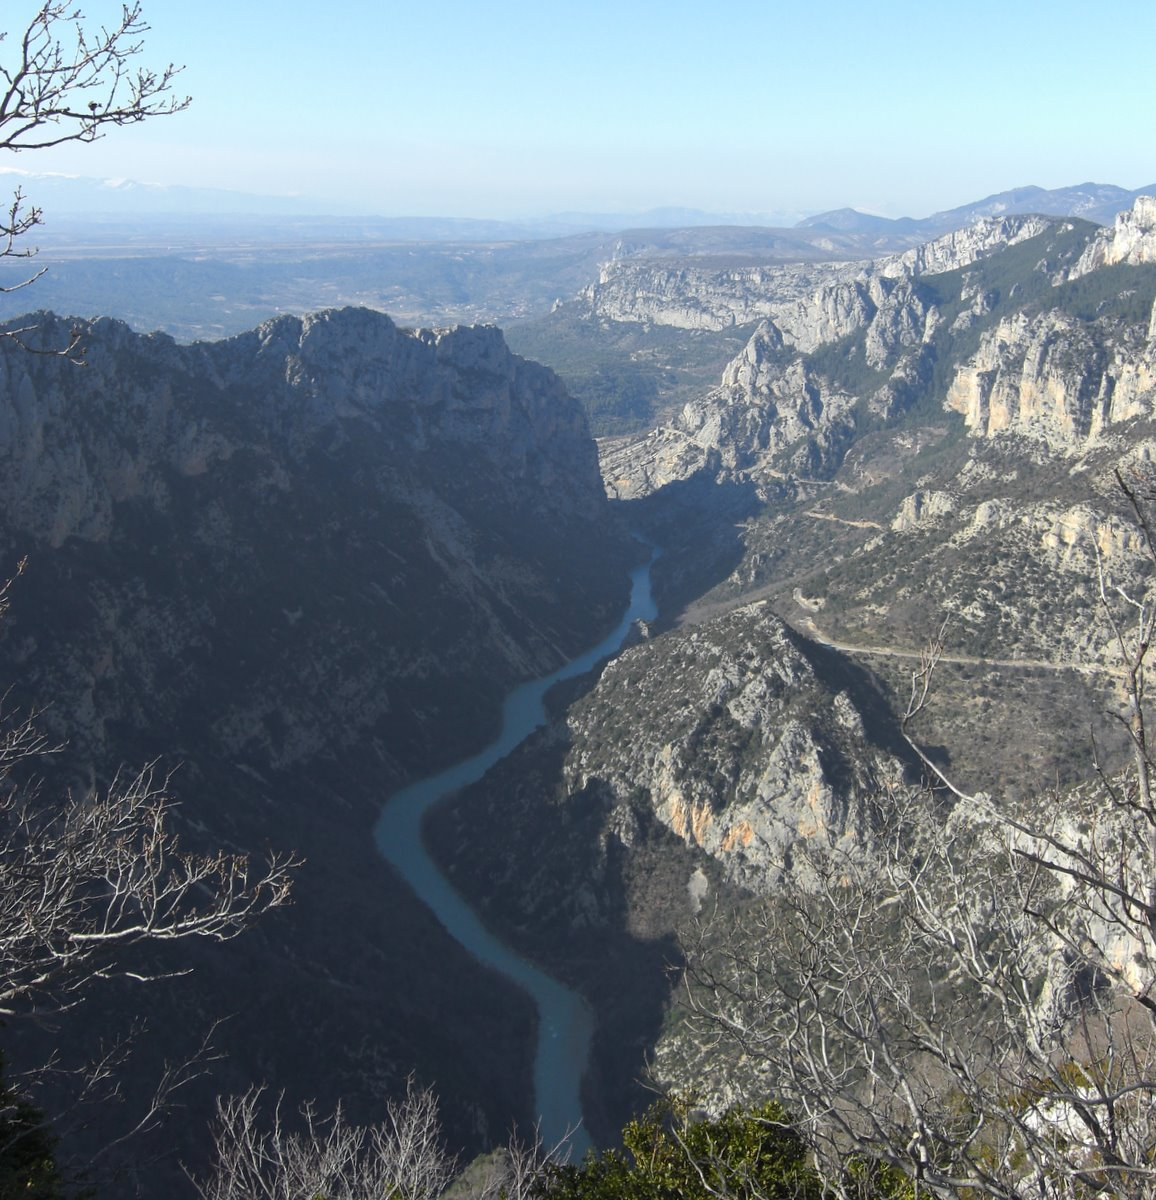 The Verdon heading into Lac St-Croix in the distance